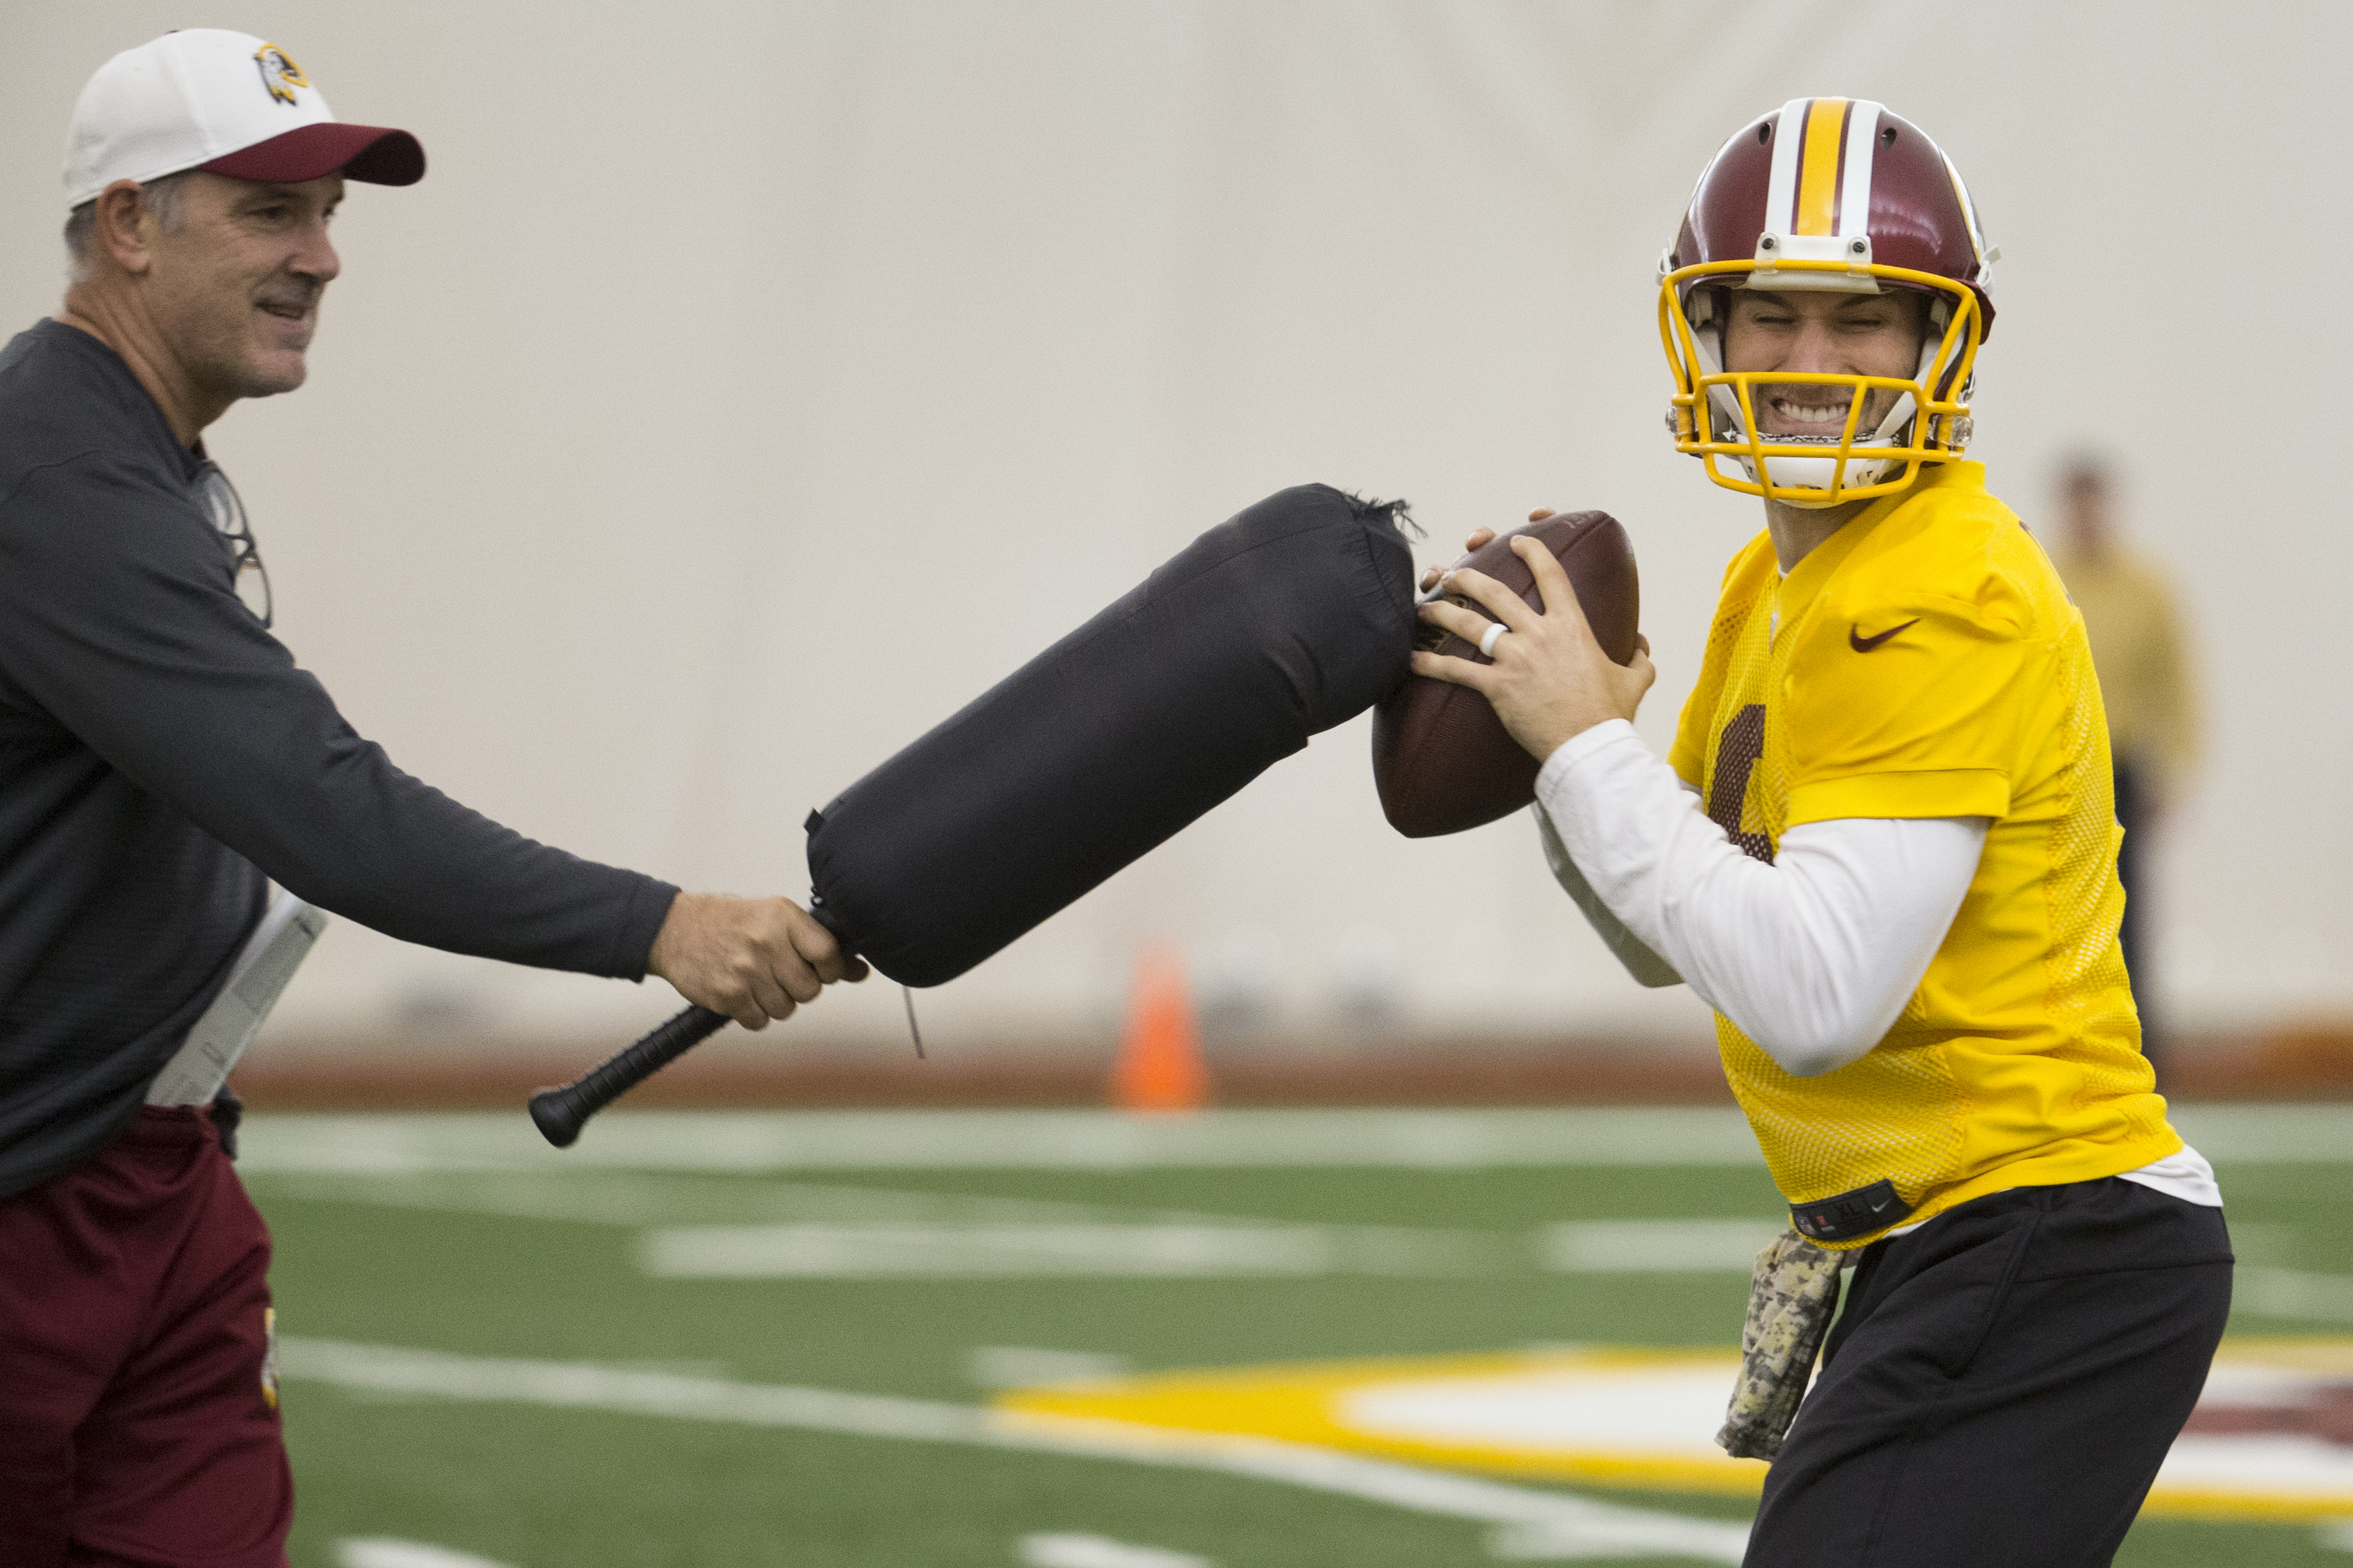 FILE - In this Friday, Jan. 8, 2016, file photo, Washington Redskins quarterback Kirk Cousins, right, works with quarterbacks coach Matt Cavanaugh on a ball protection drill during practice at the team's NFL football training facility at Redskins Park, in